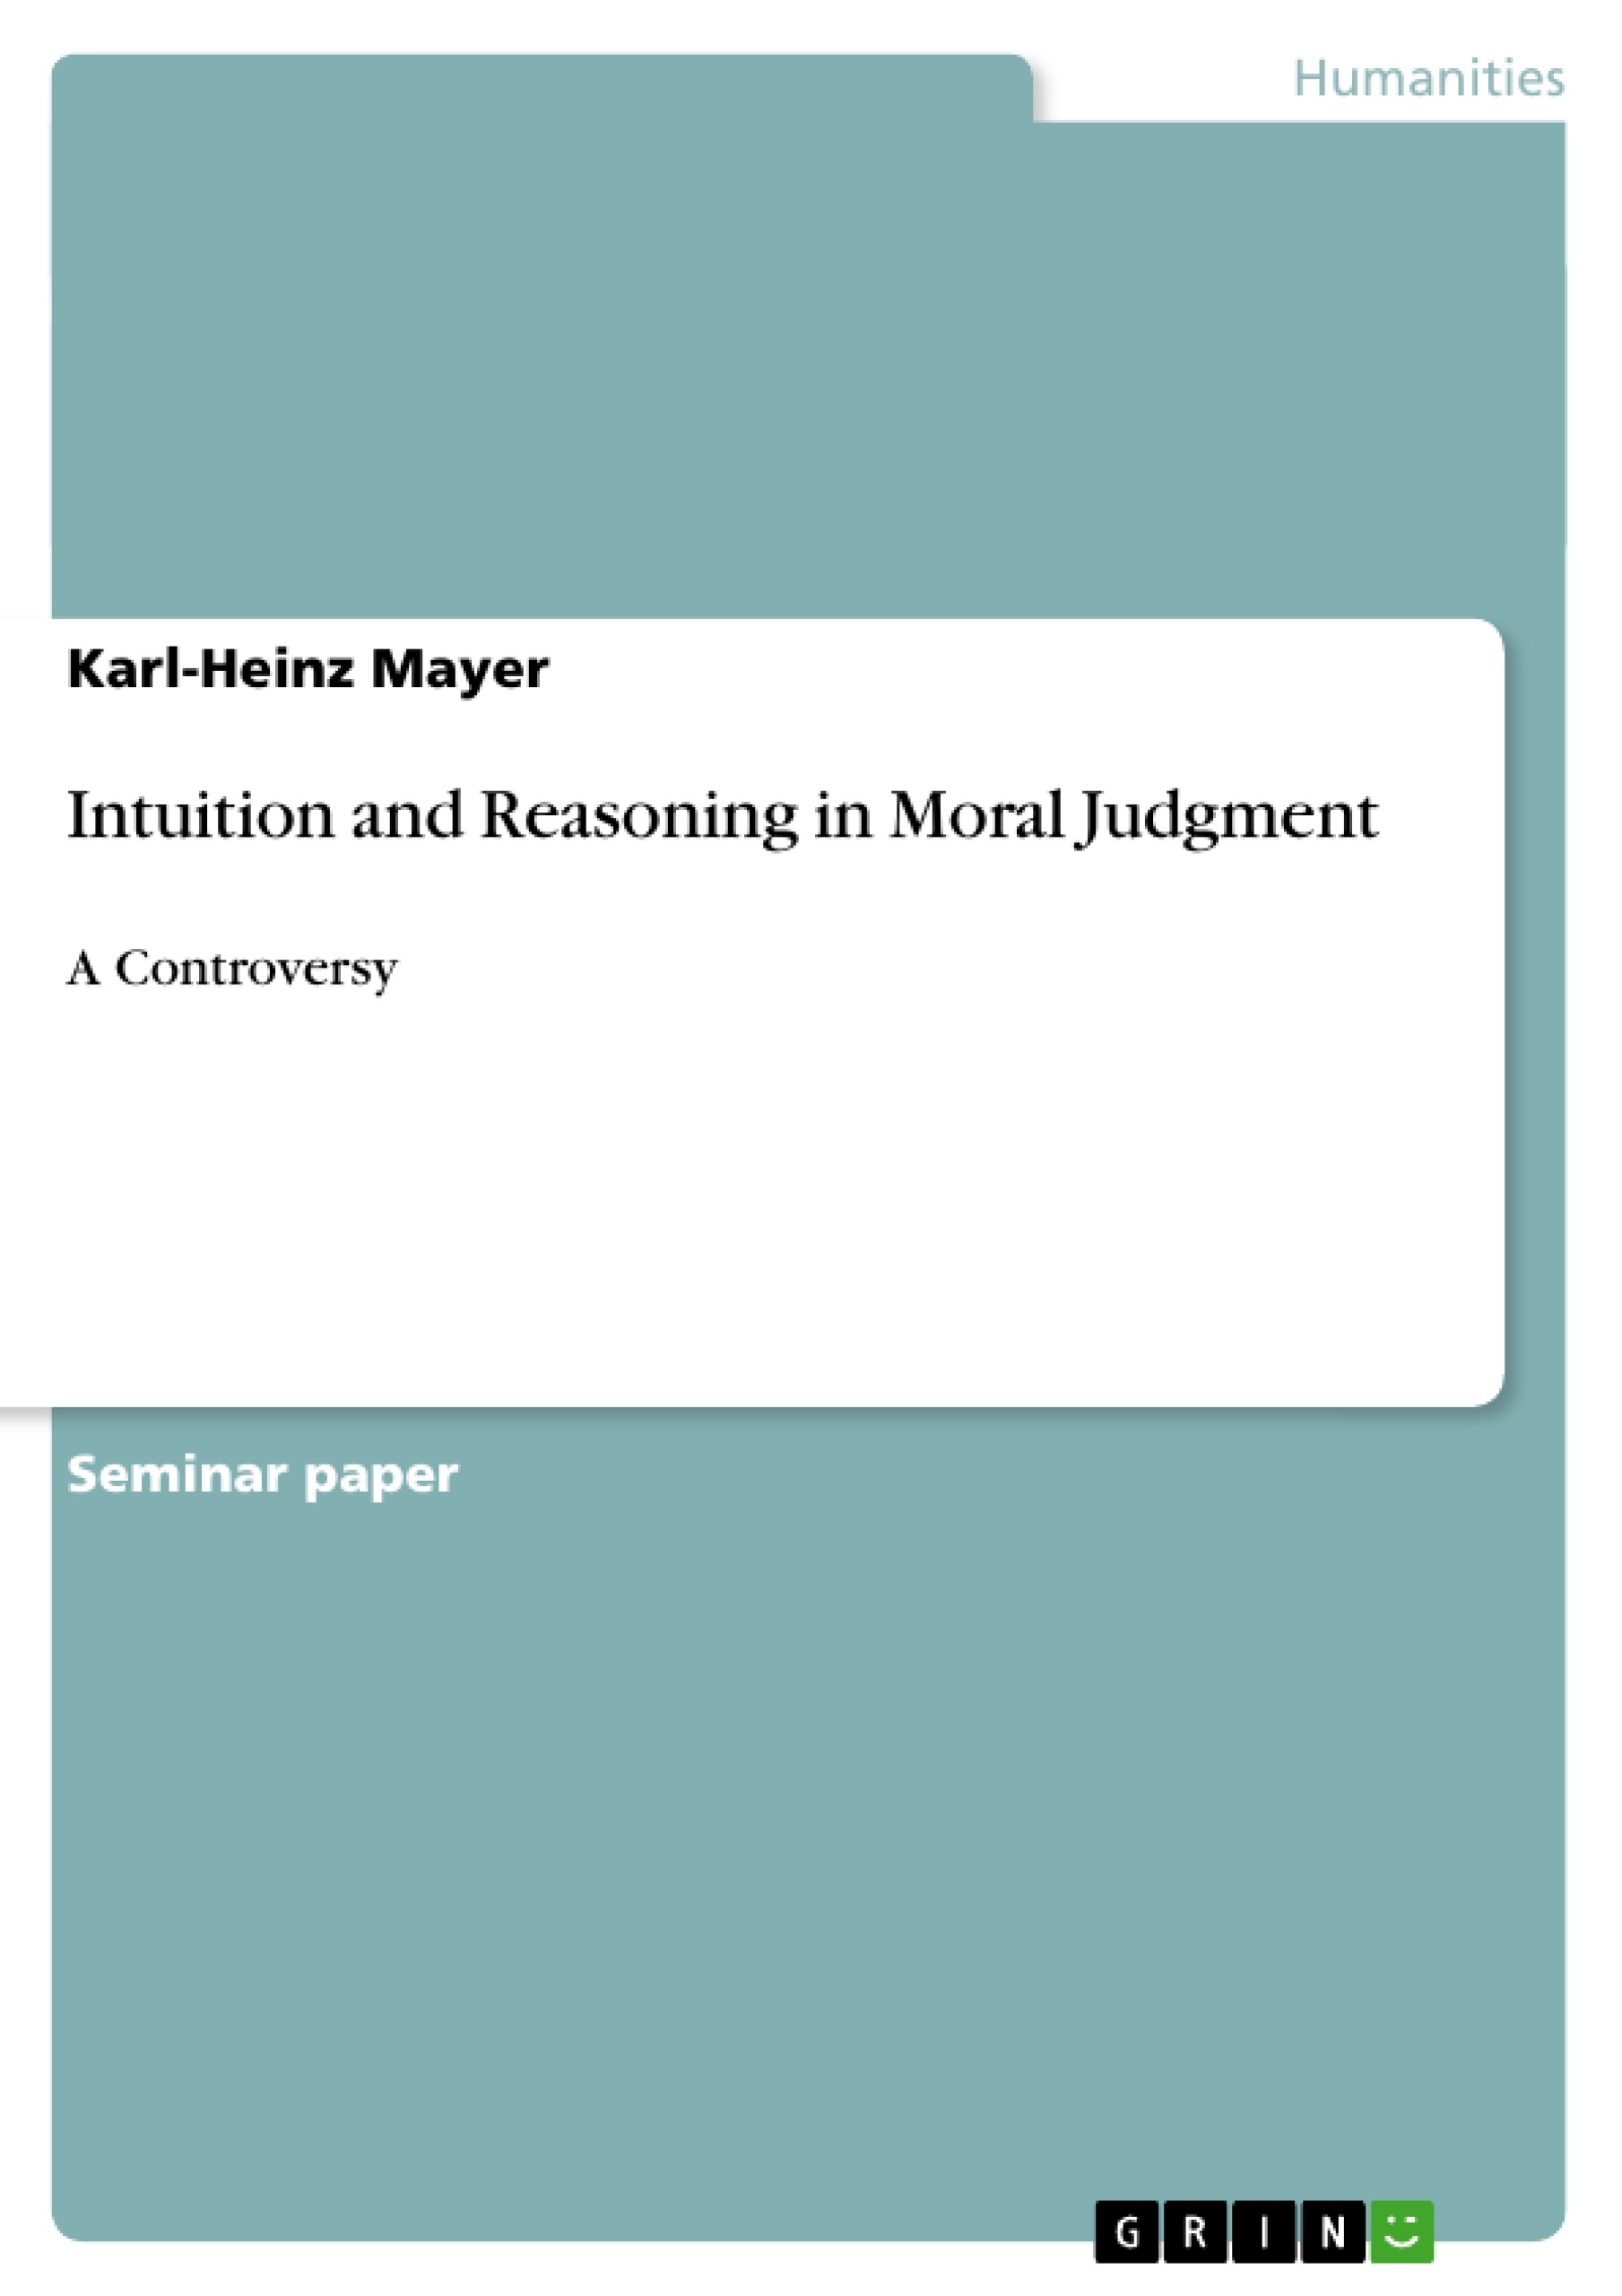 Title: Intuition and Reasoning in Moral Judgment